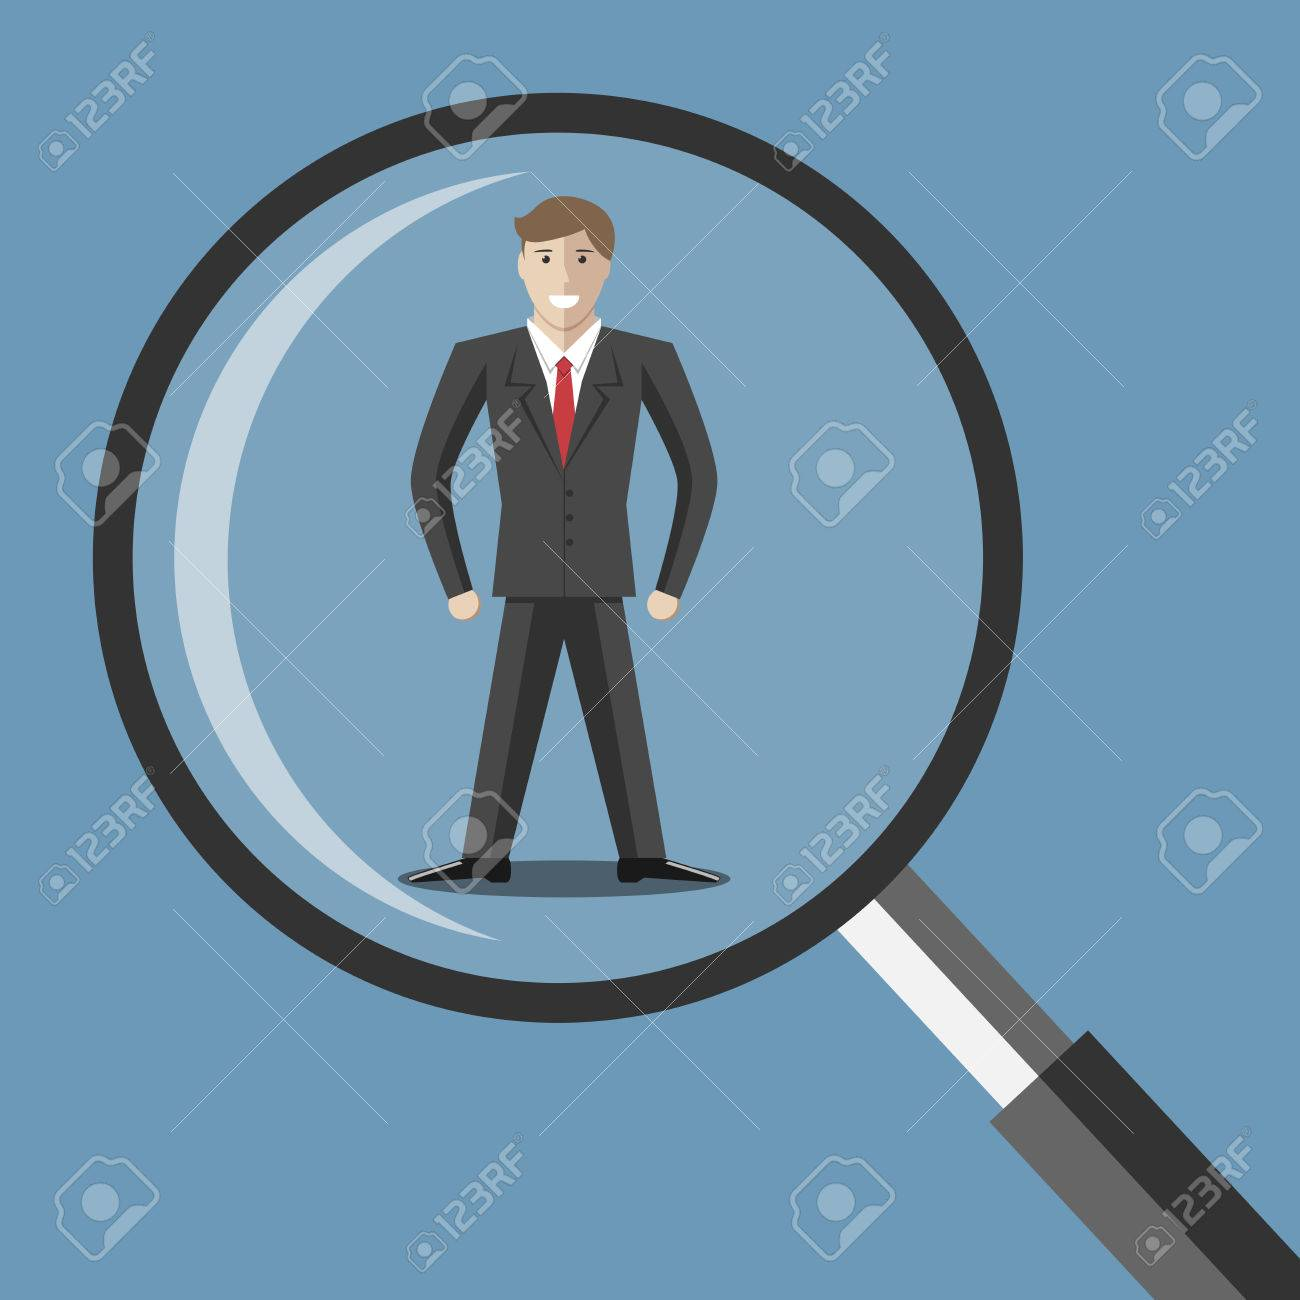 Young man under magnifying glass. Choice selection hiring analysis interview employee job staff recruitment concept. EPS 10 vector illustration transparency used - 41126773